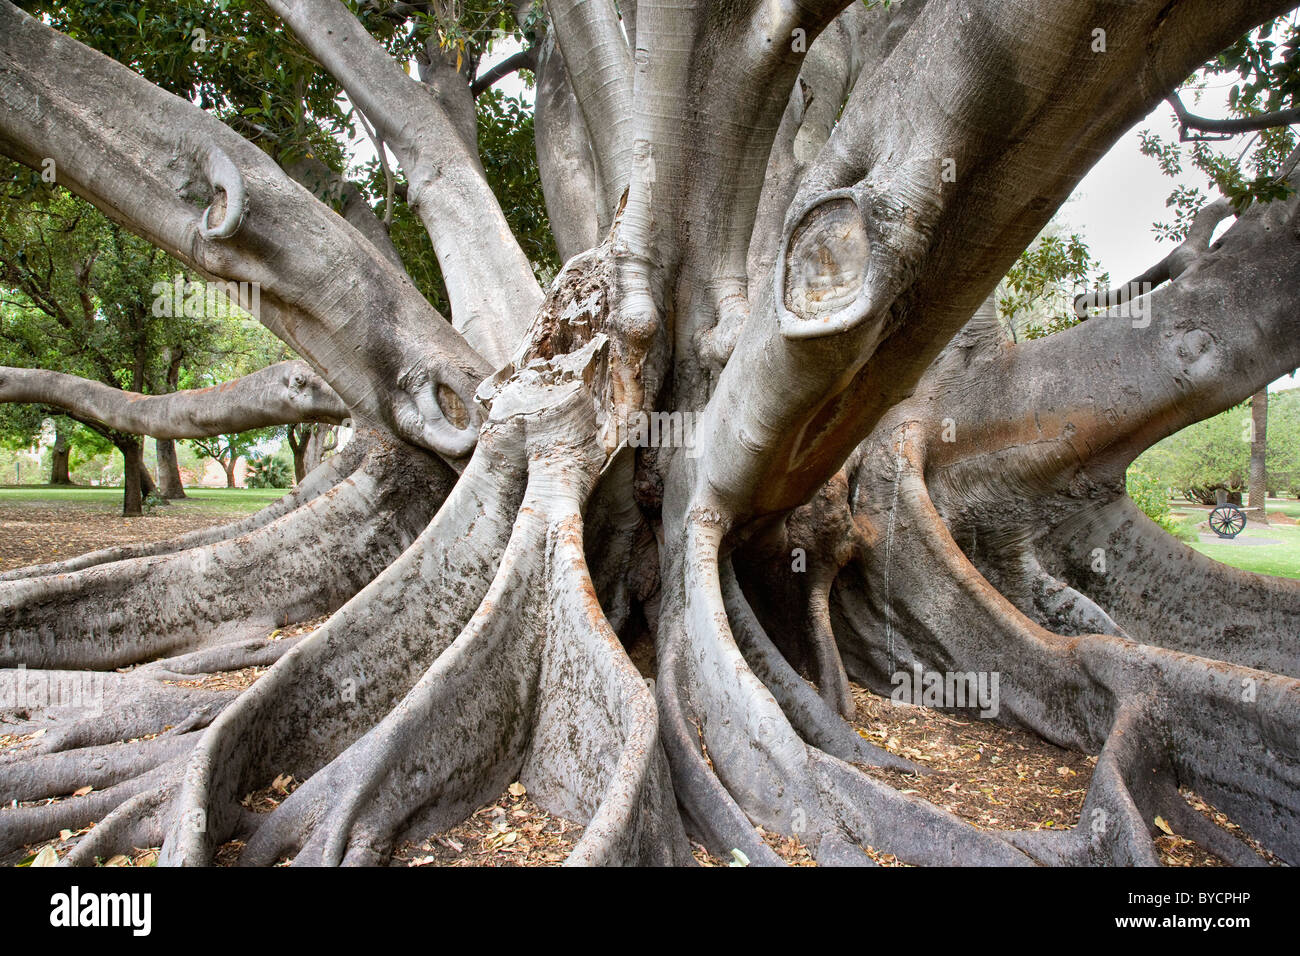 Buttress roots and multiple trunks of a Moreton Bay fig tree in Kings Park in Perth Western Australia Stock Photo